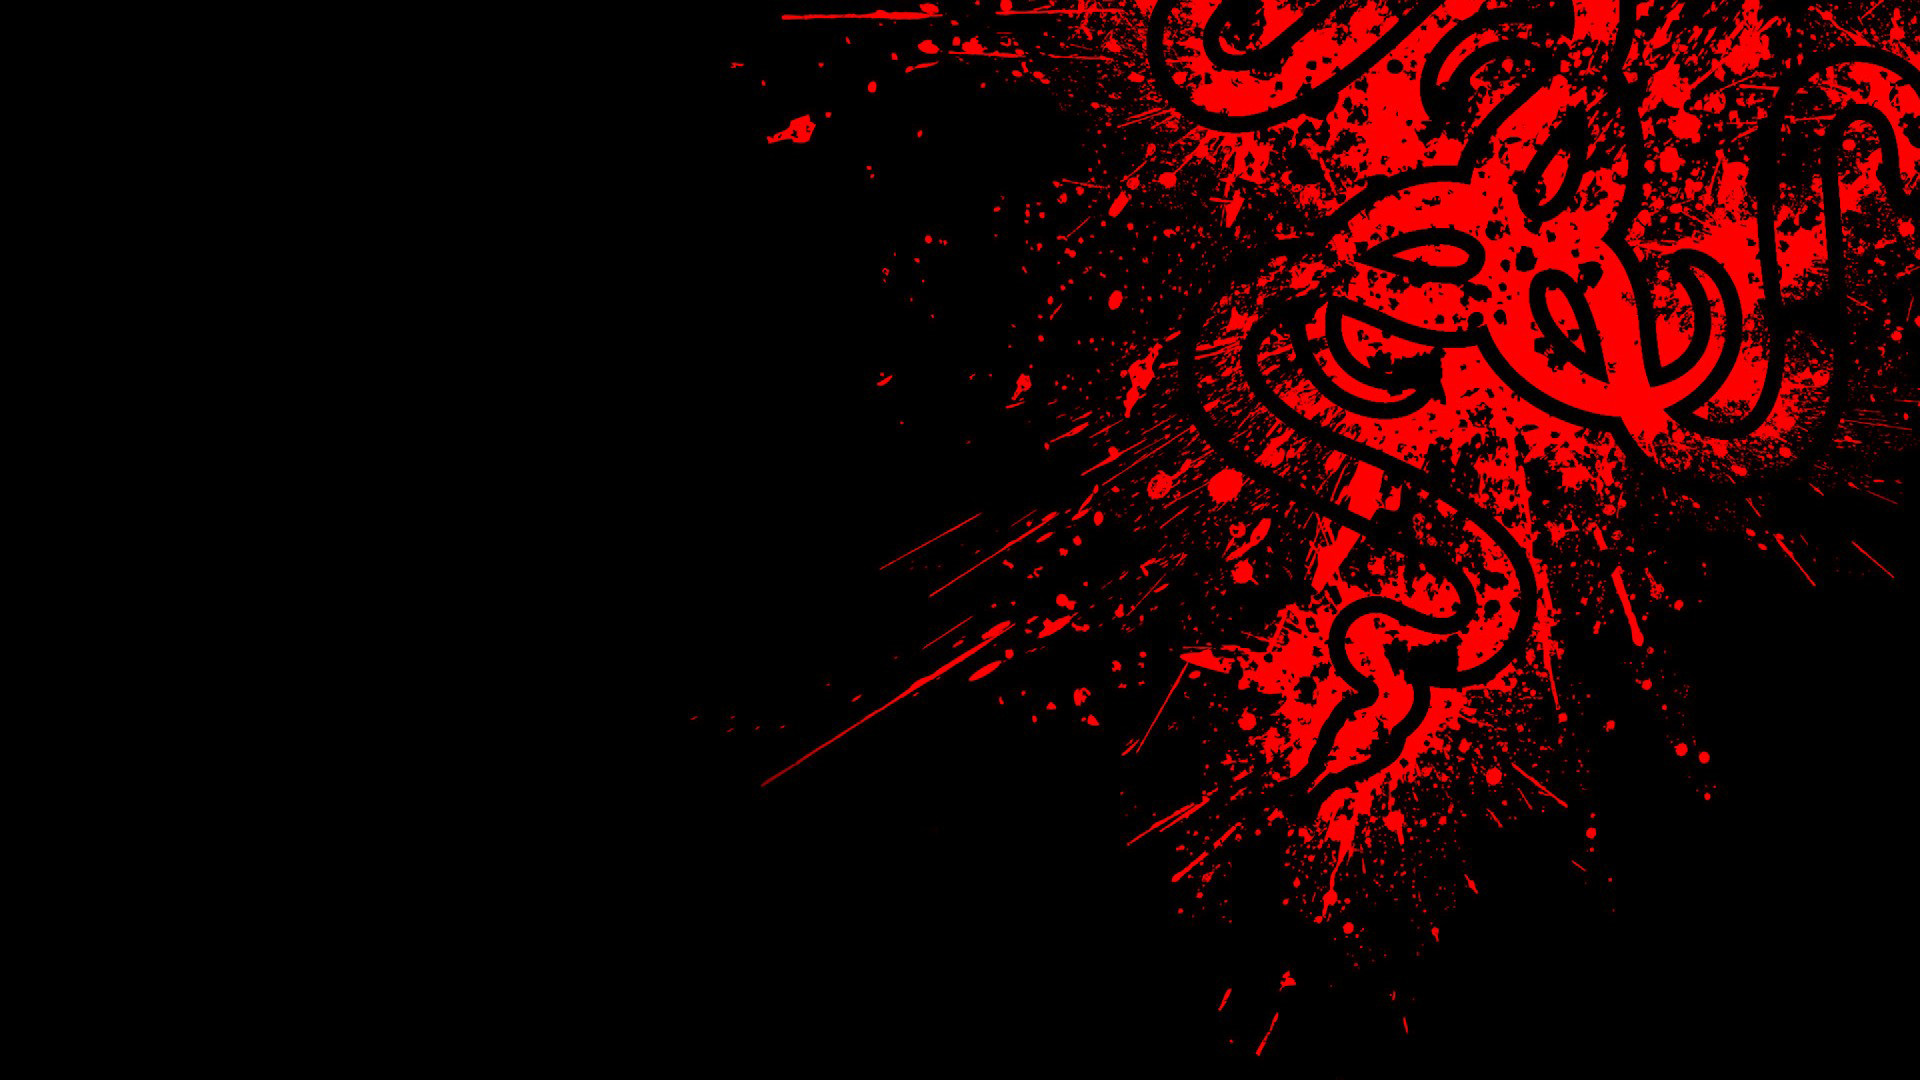 Red Razer Wallpaper Hd 78 Images